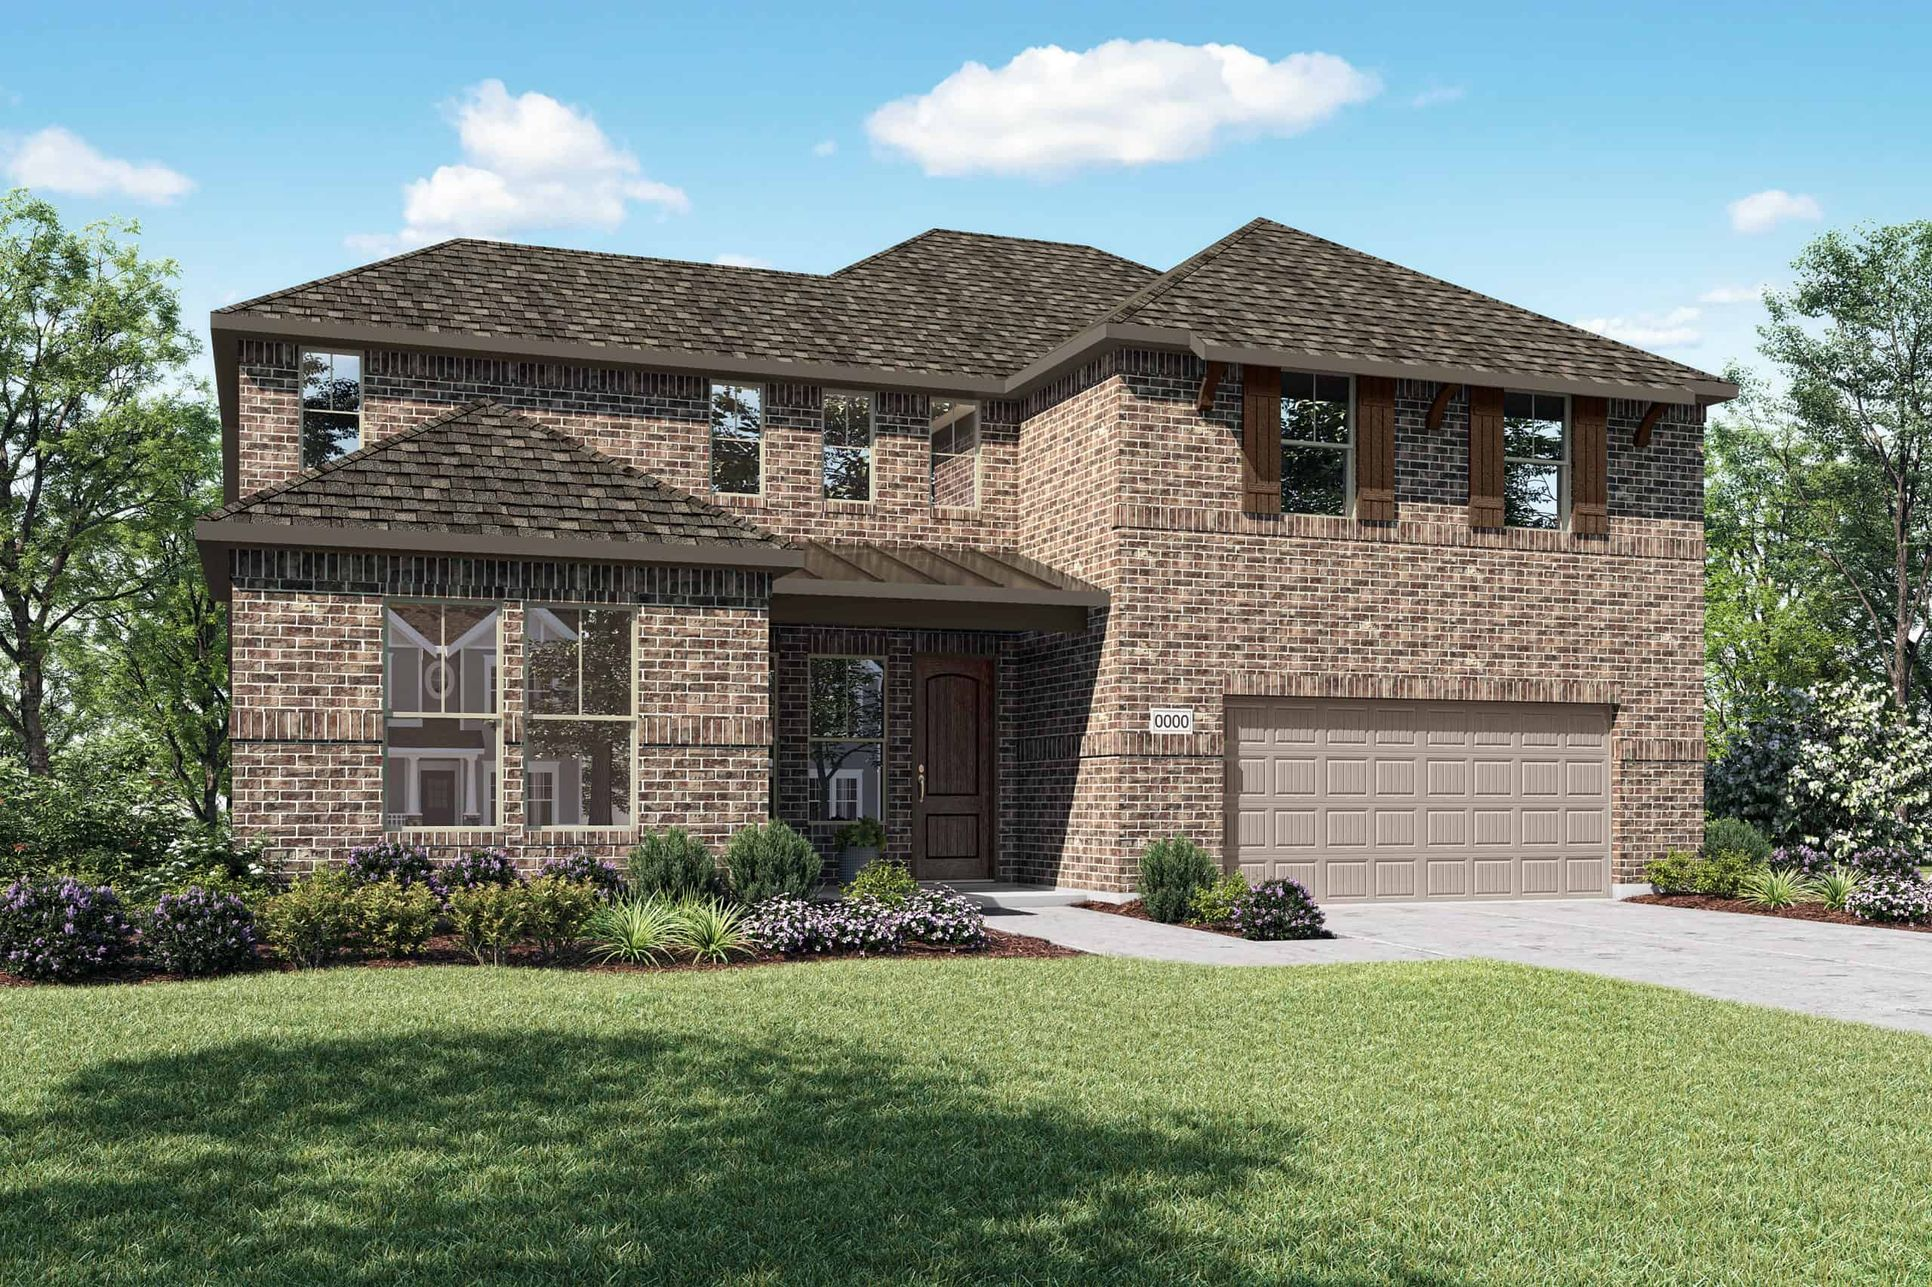 Elevation A:Elevation A is a two story full brick home design with clean lines and shutters on the front windows